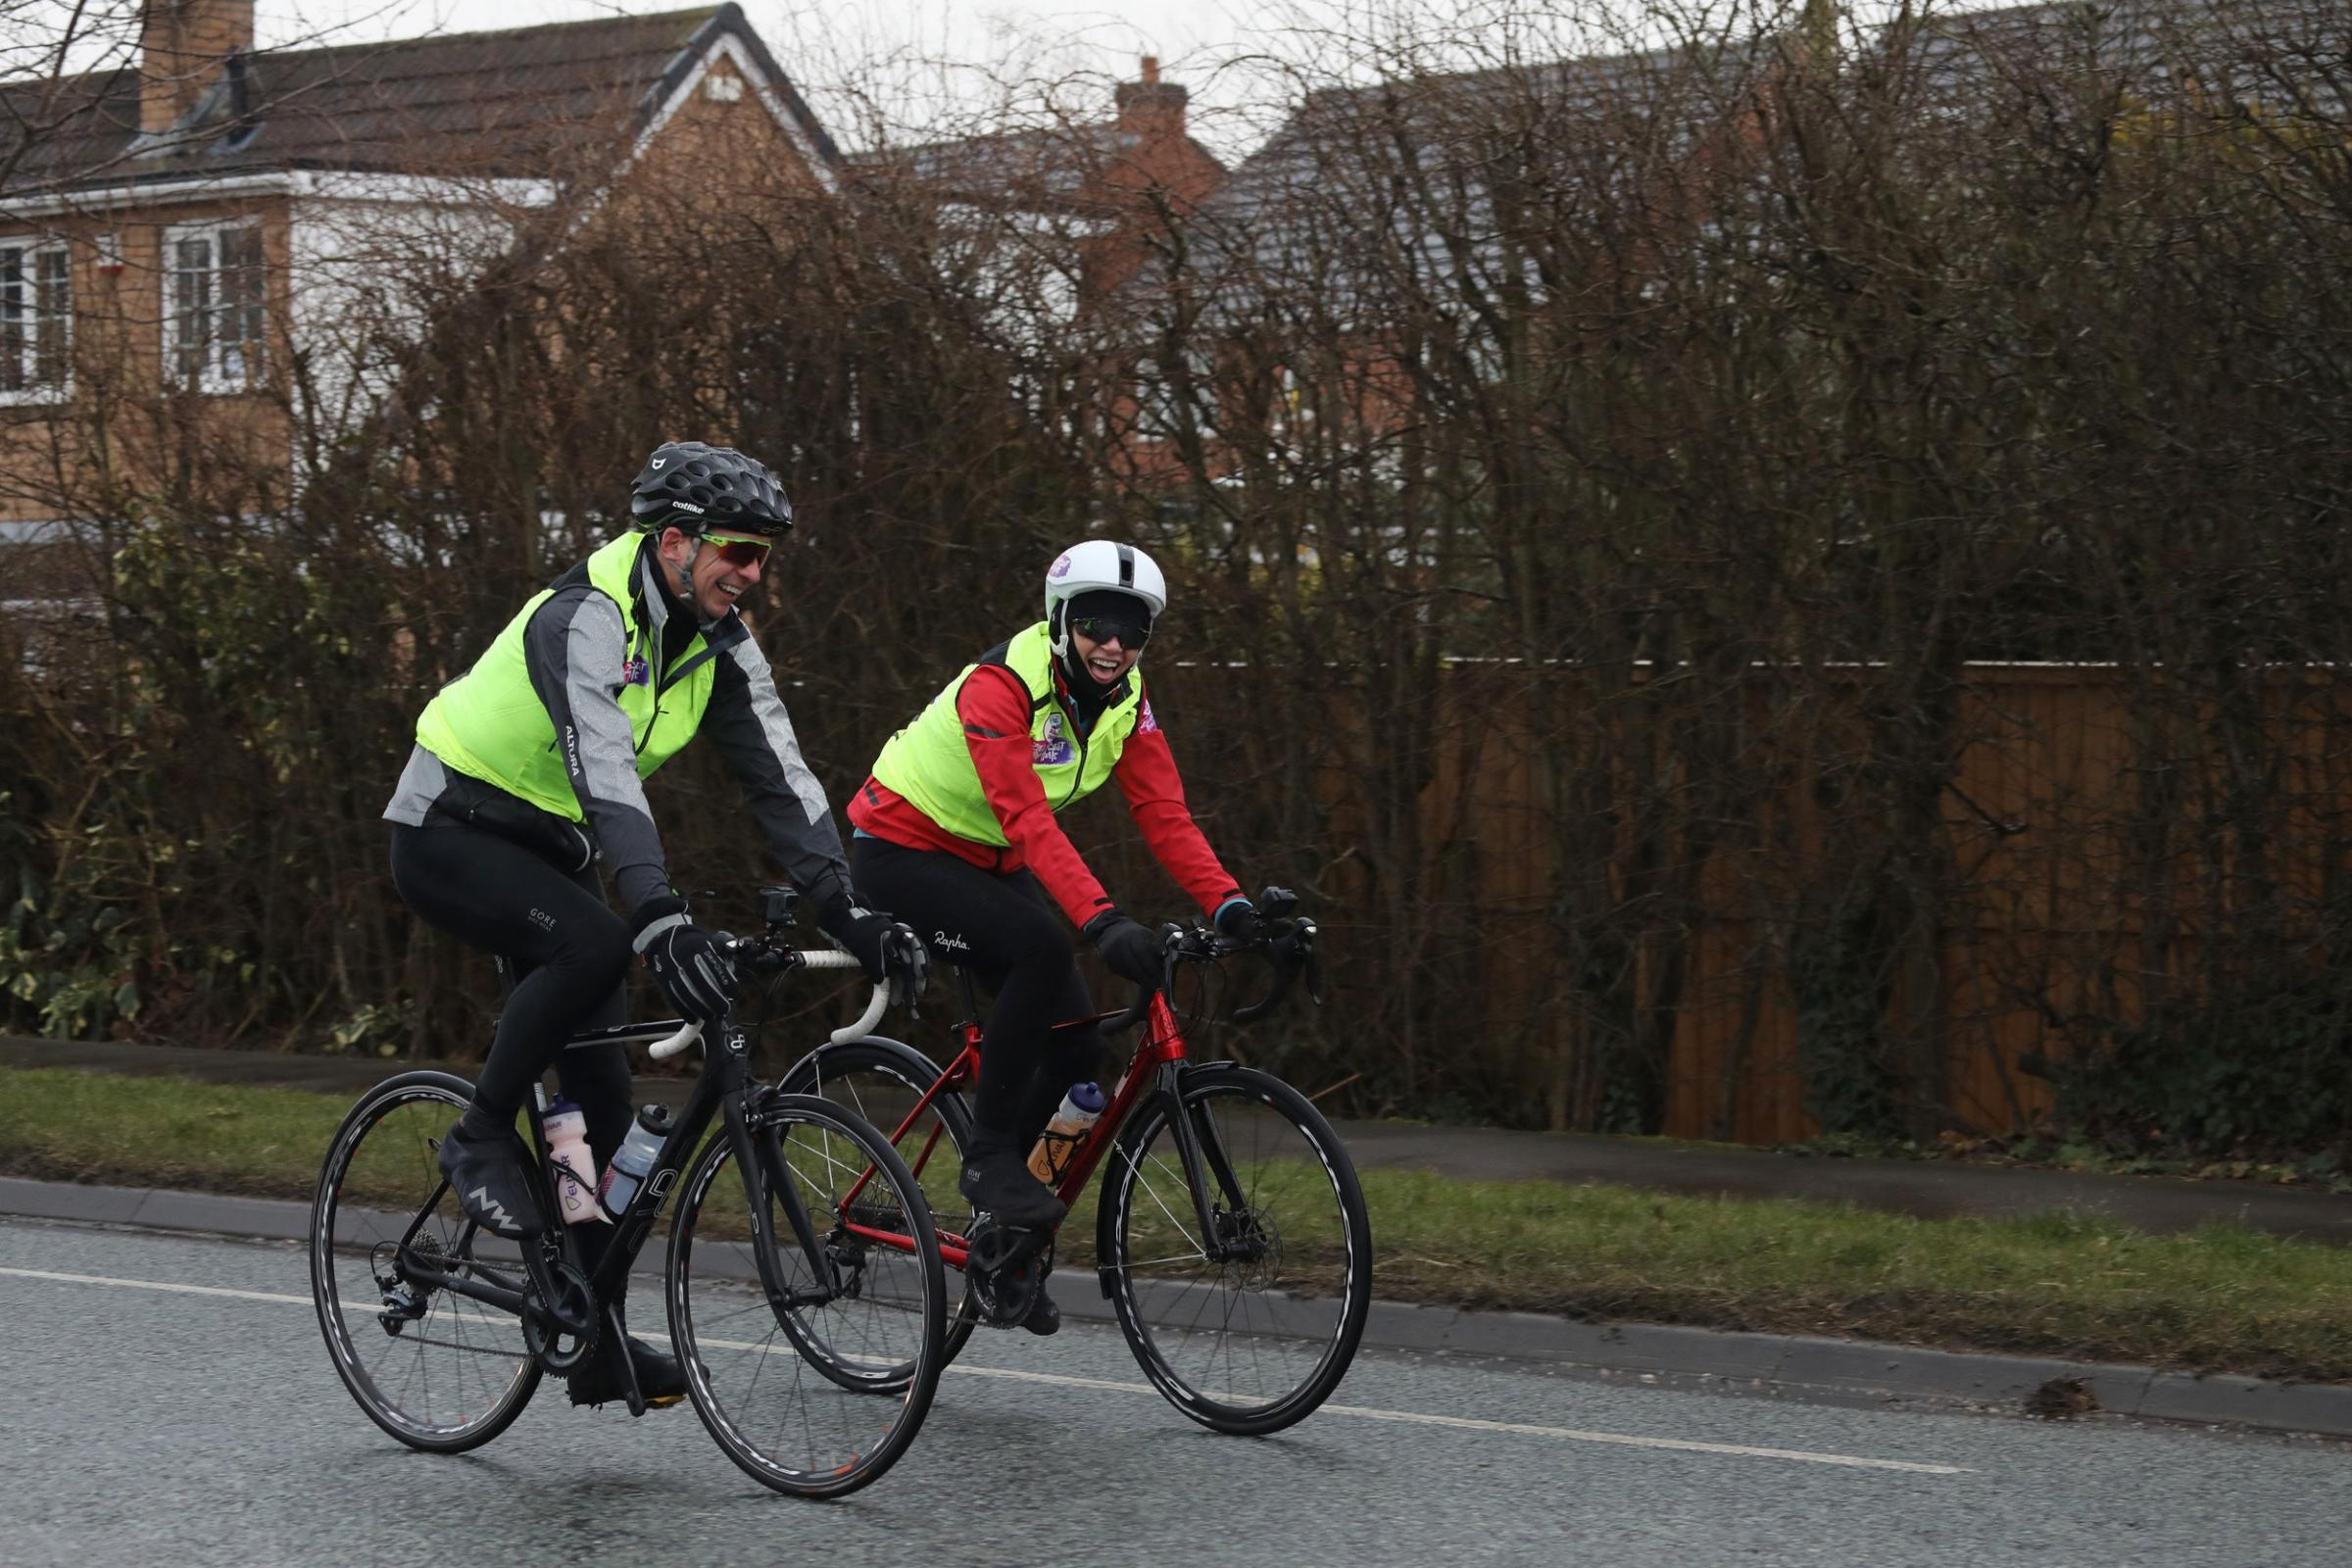 Zoe Ball is attempting to cycle just over 300 miles from her birthplace of Blackpool to her hometown of Brighton (Victoria Dawe/Sport Relief/PA)